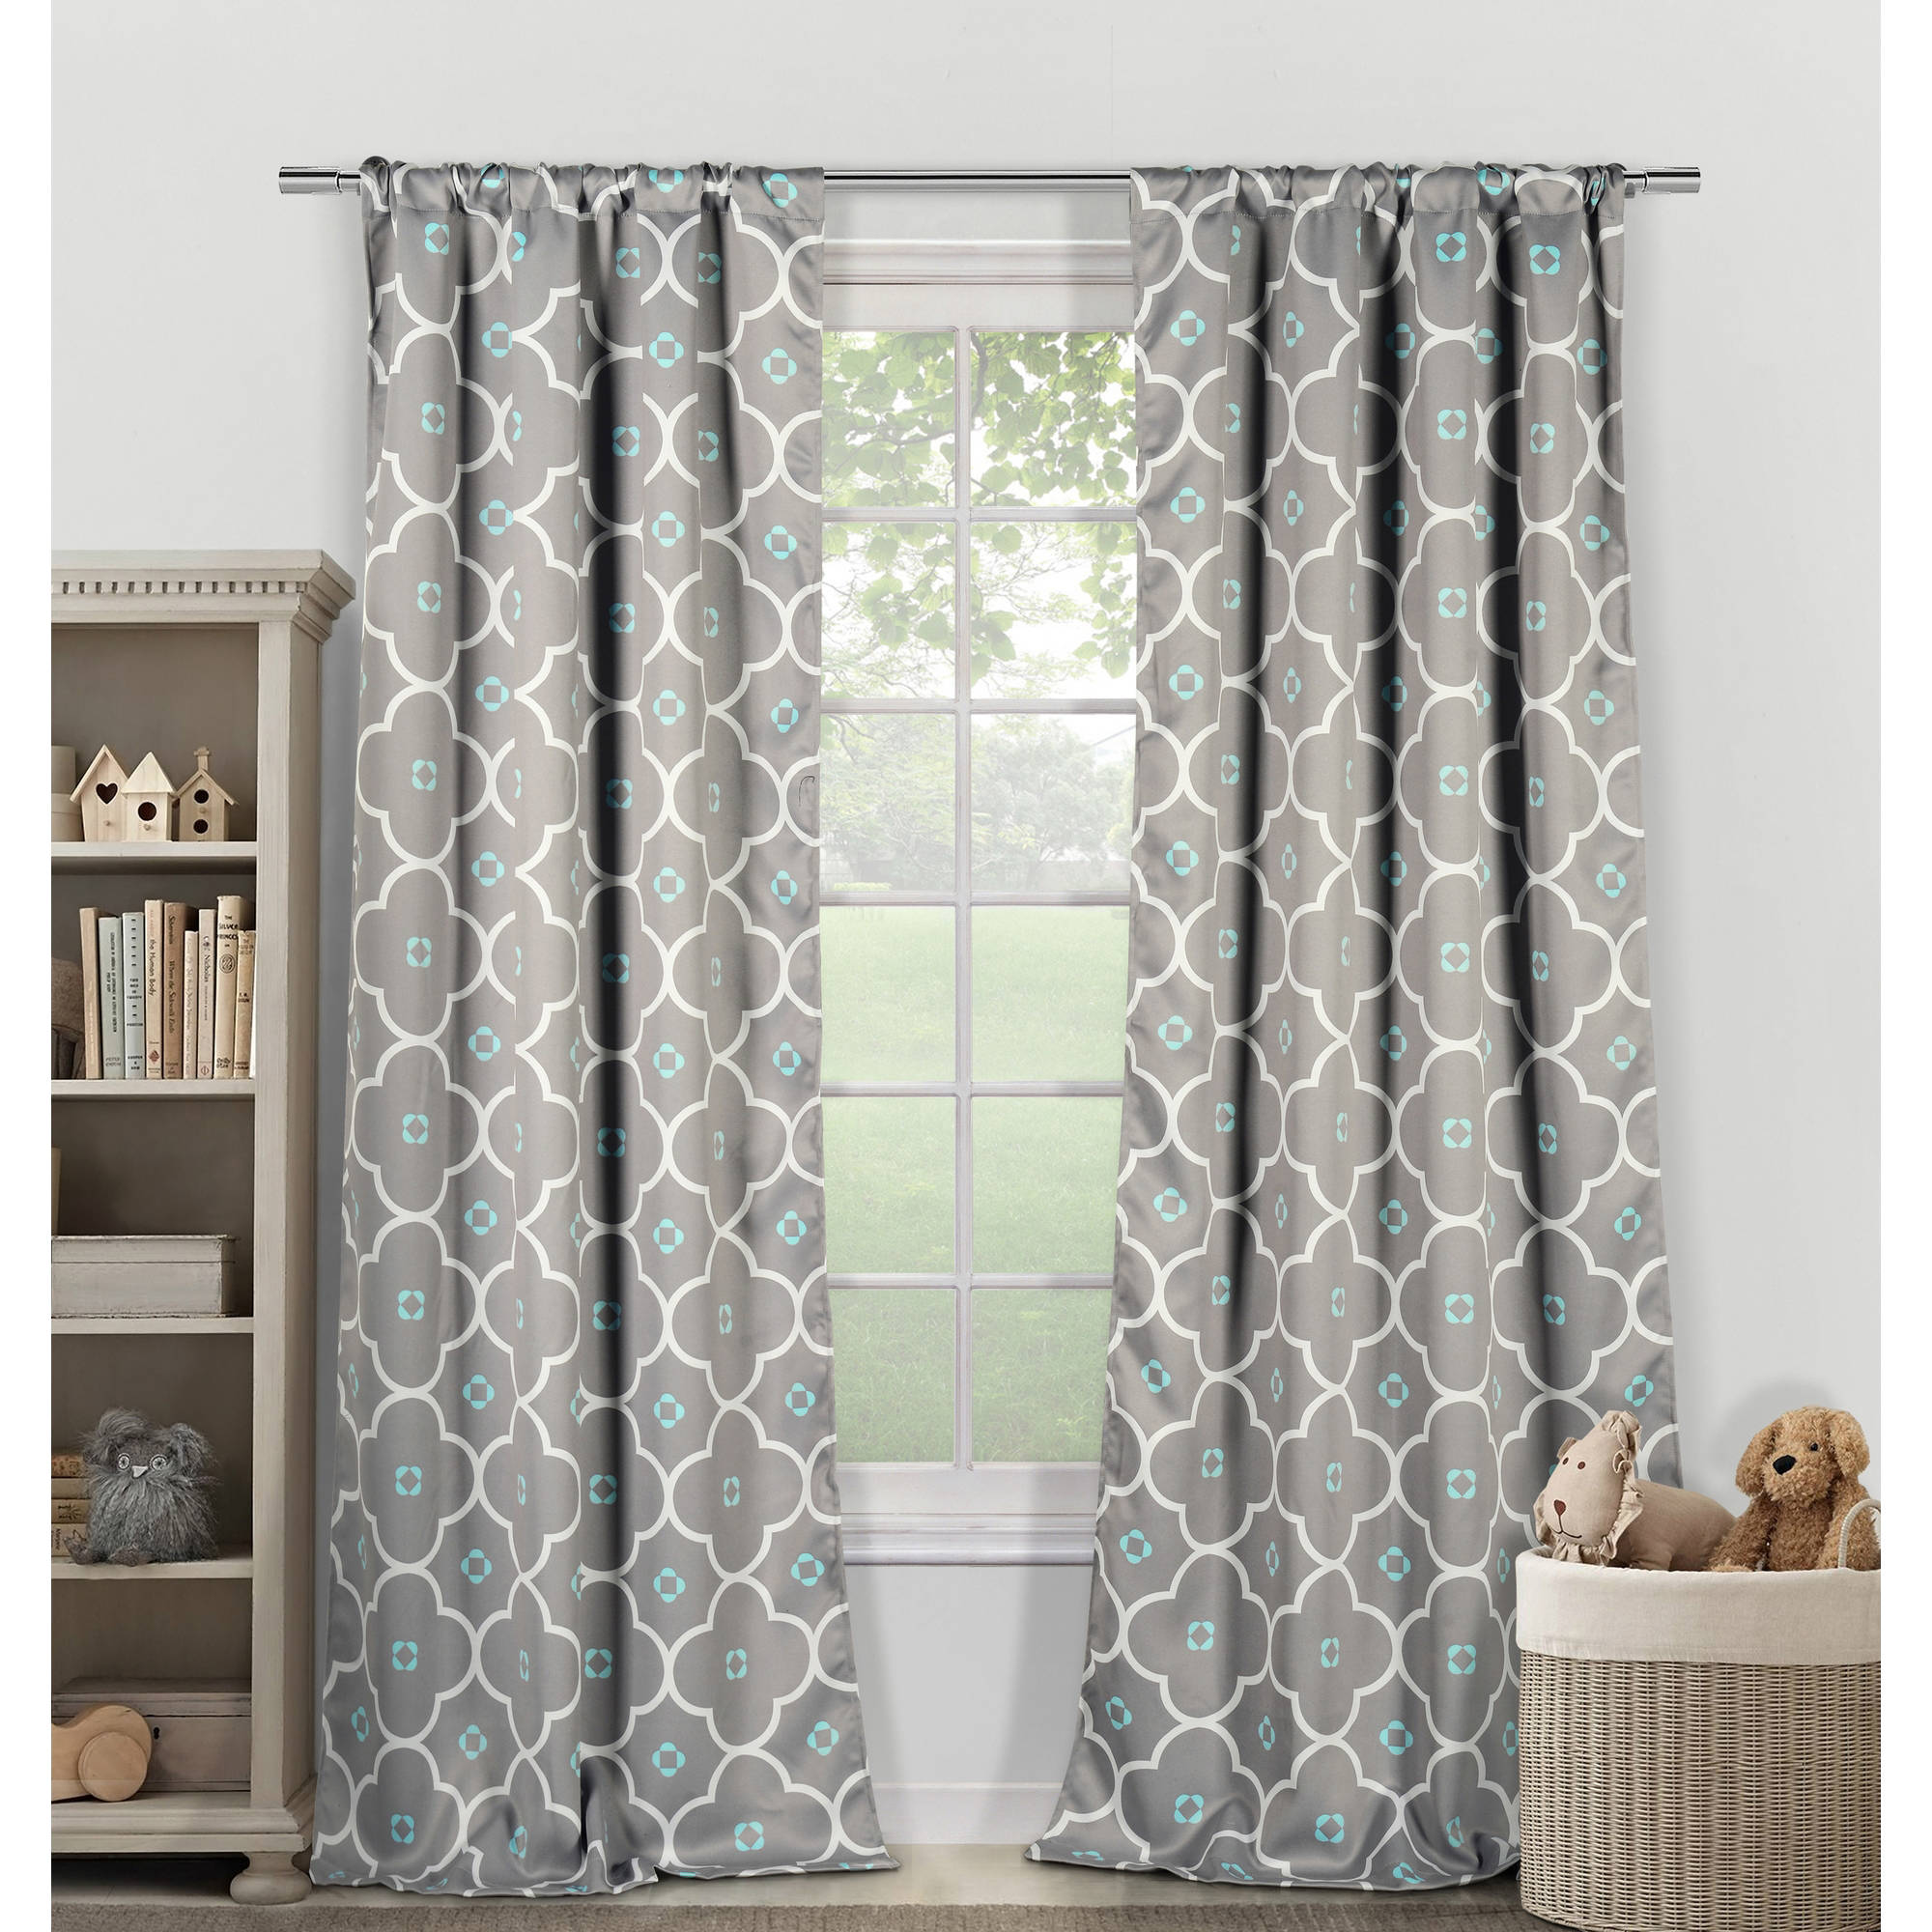 Cheap grey curtains - Cheap Grey Curtains 29